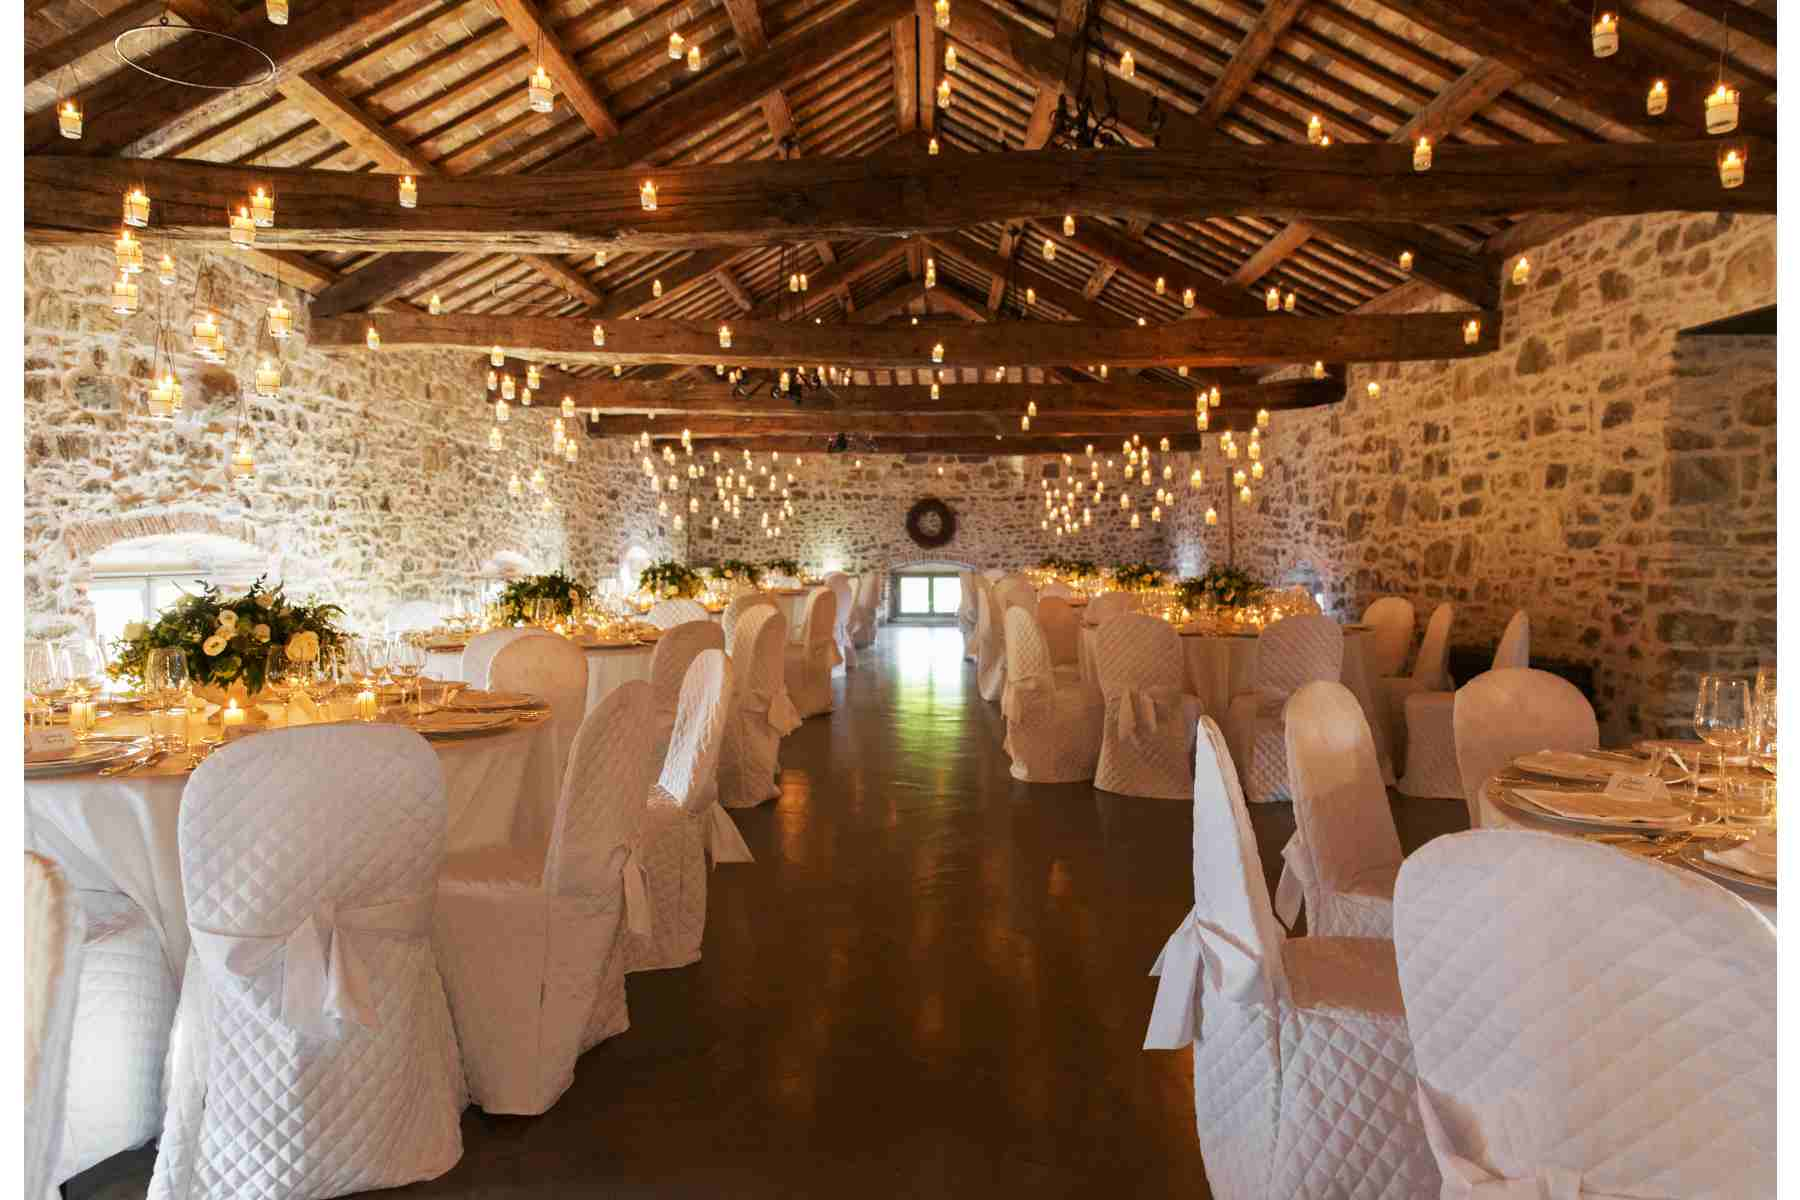 Wedding in Italy in an ancient atmosphere  Wedding Package